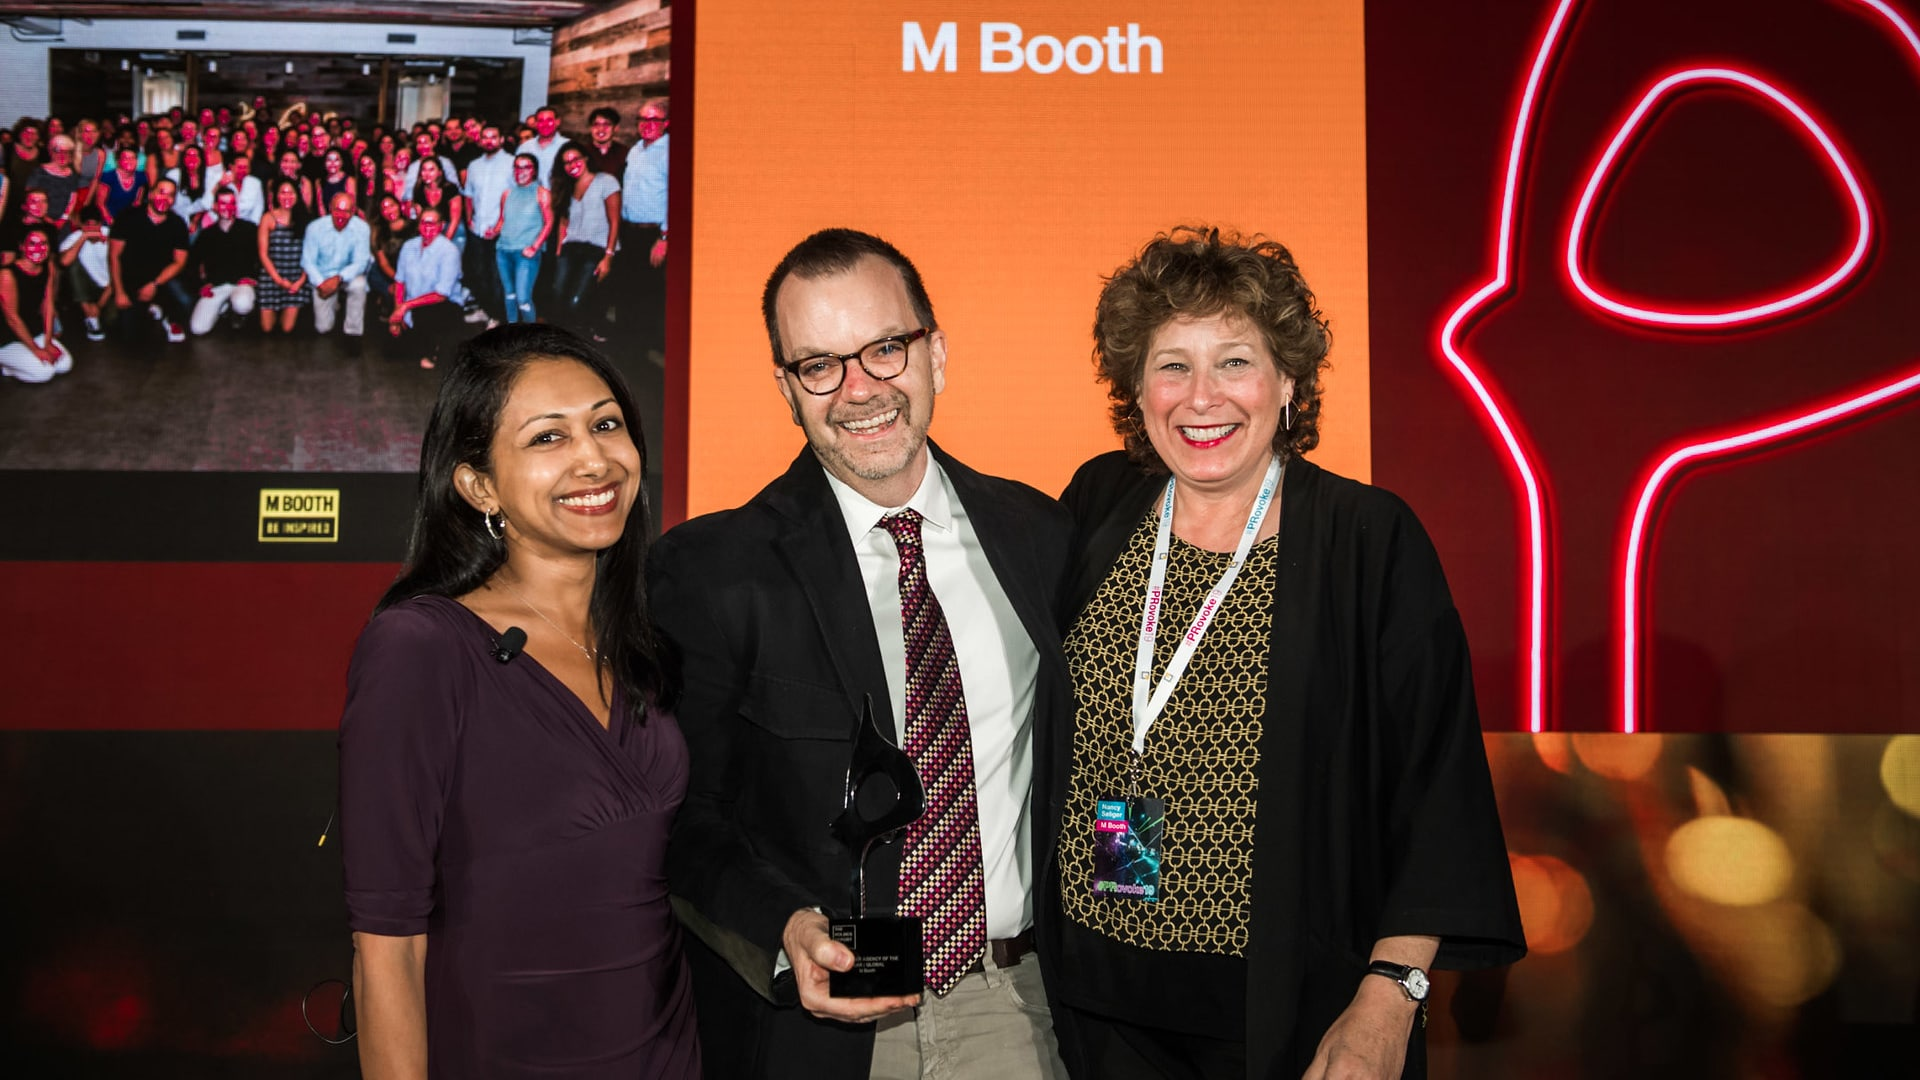 M Booth named Global Consumer Agency of the Year by Holmes